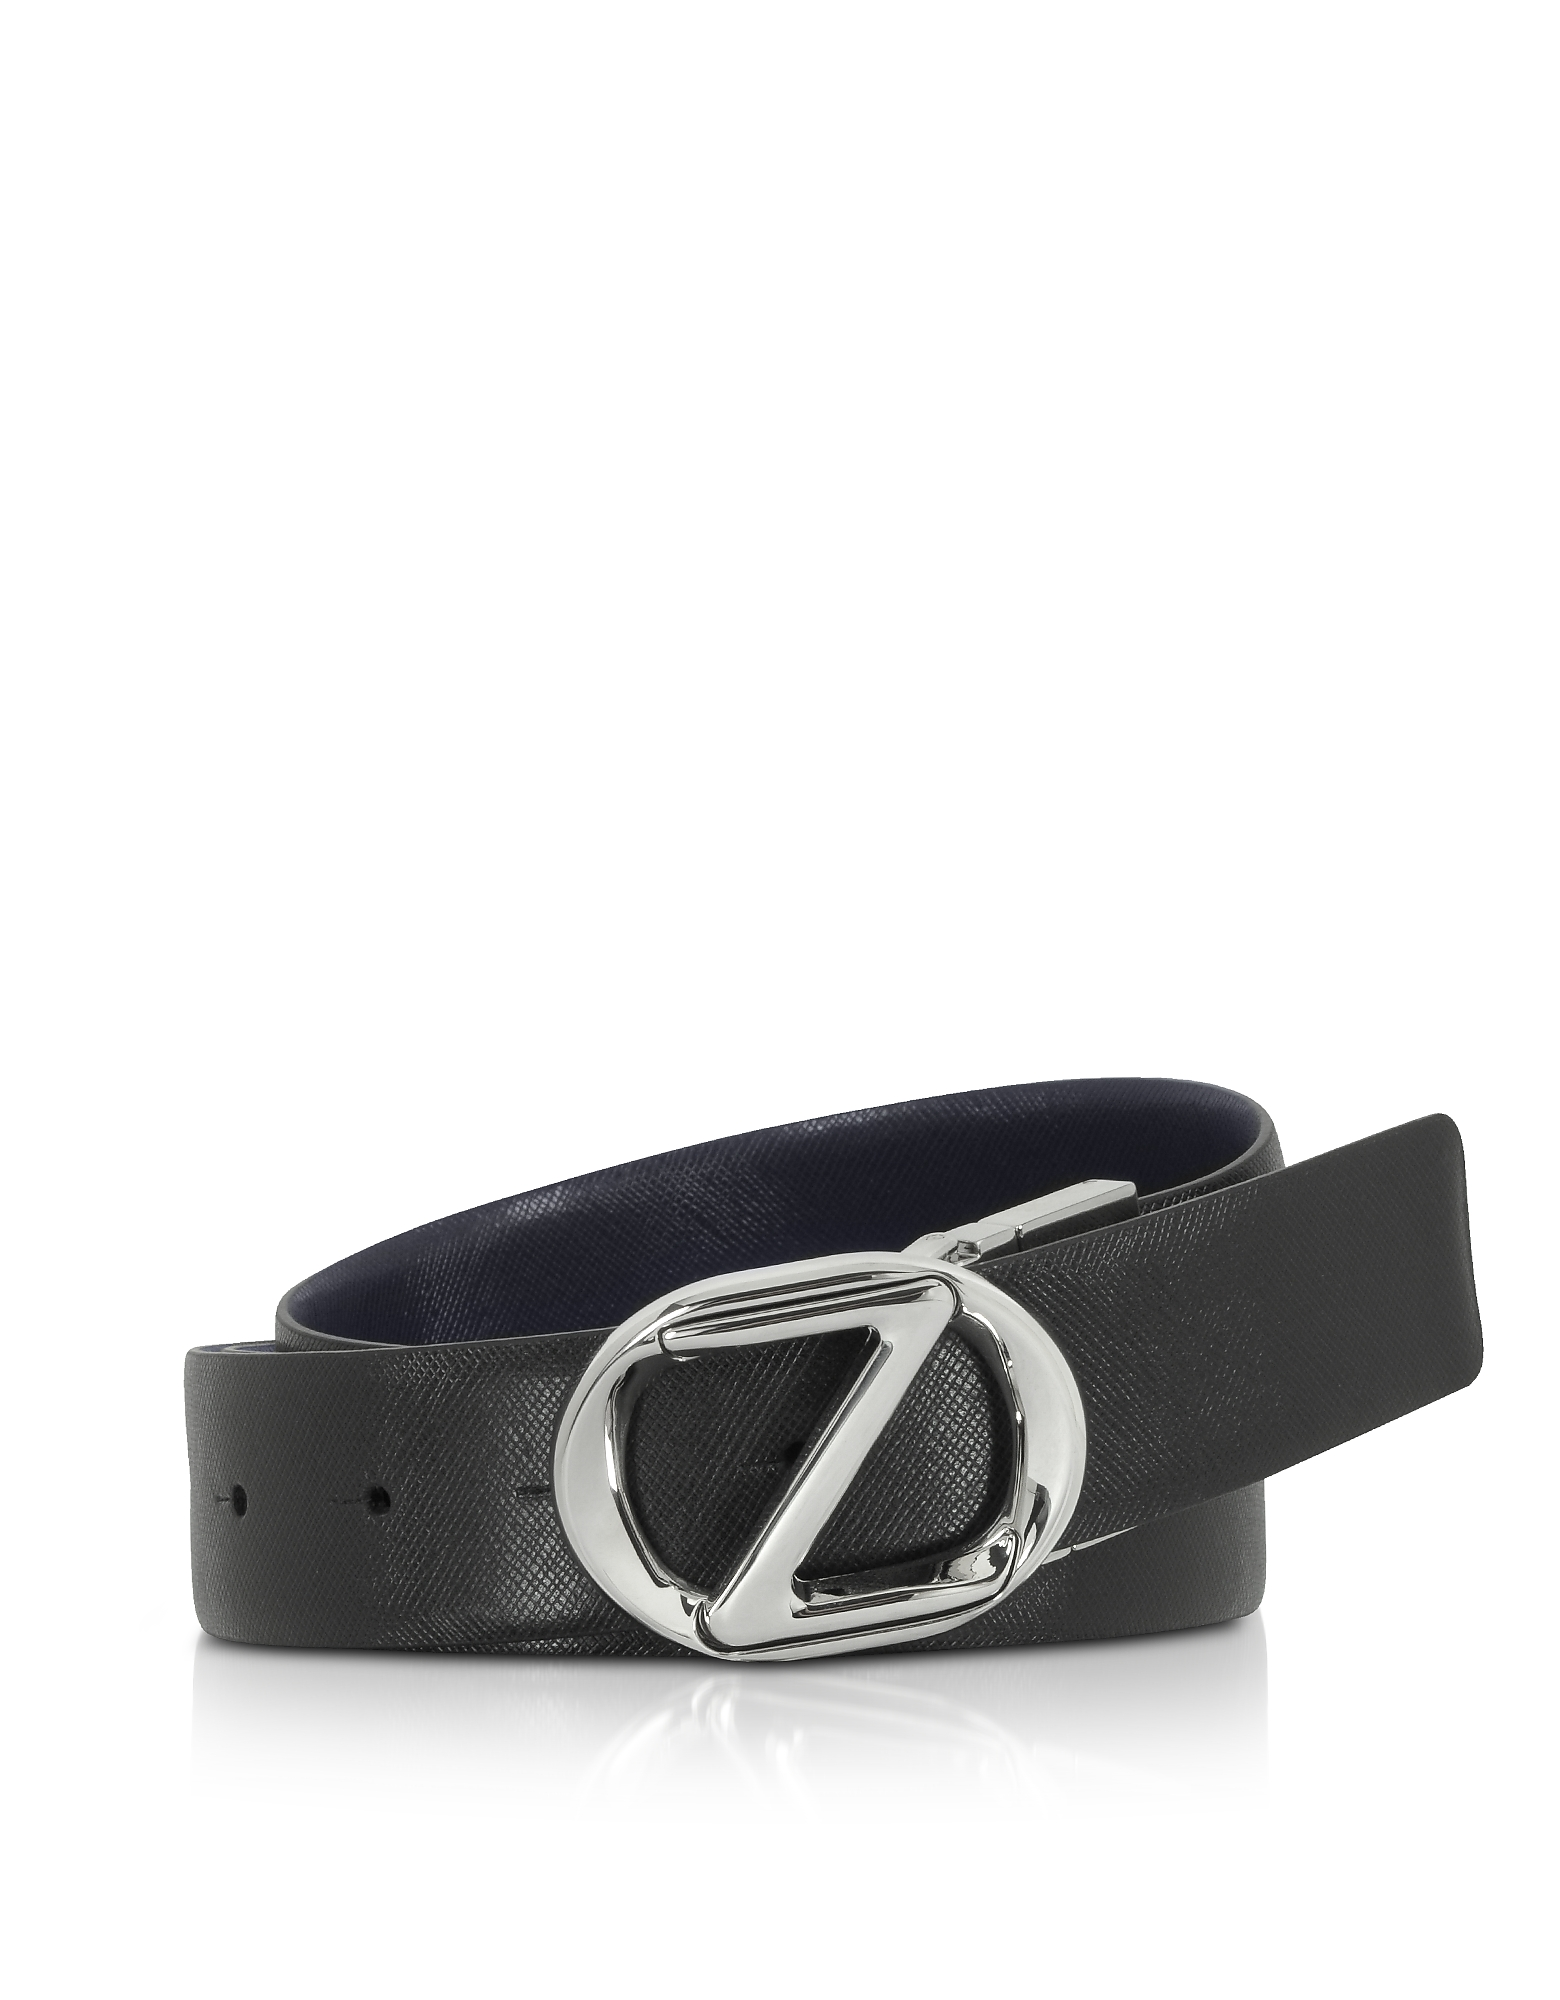 Black Crossgrain Leather Adjustable Belt